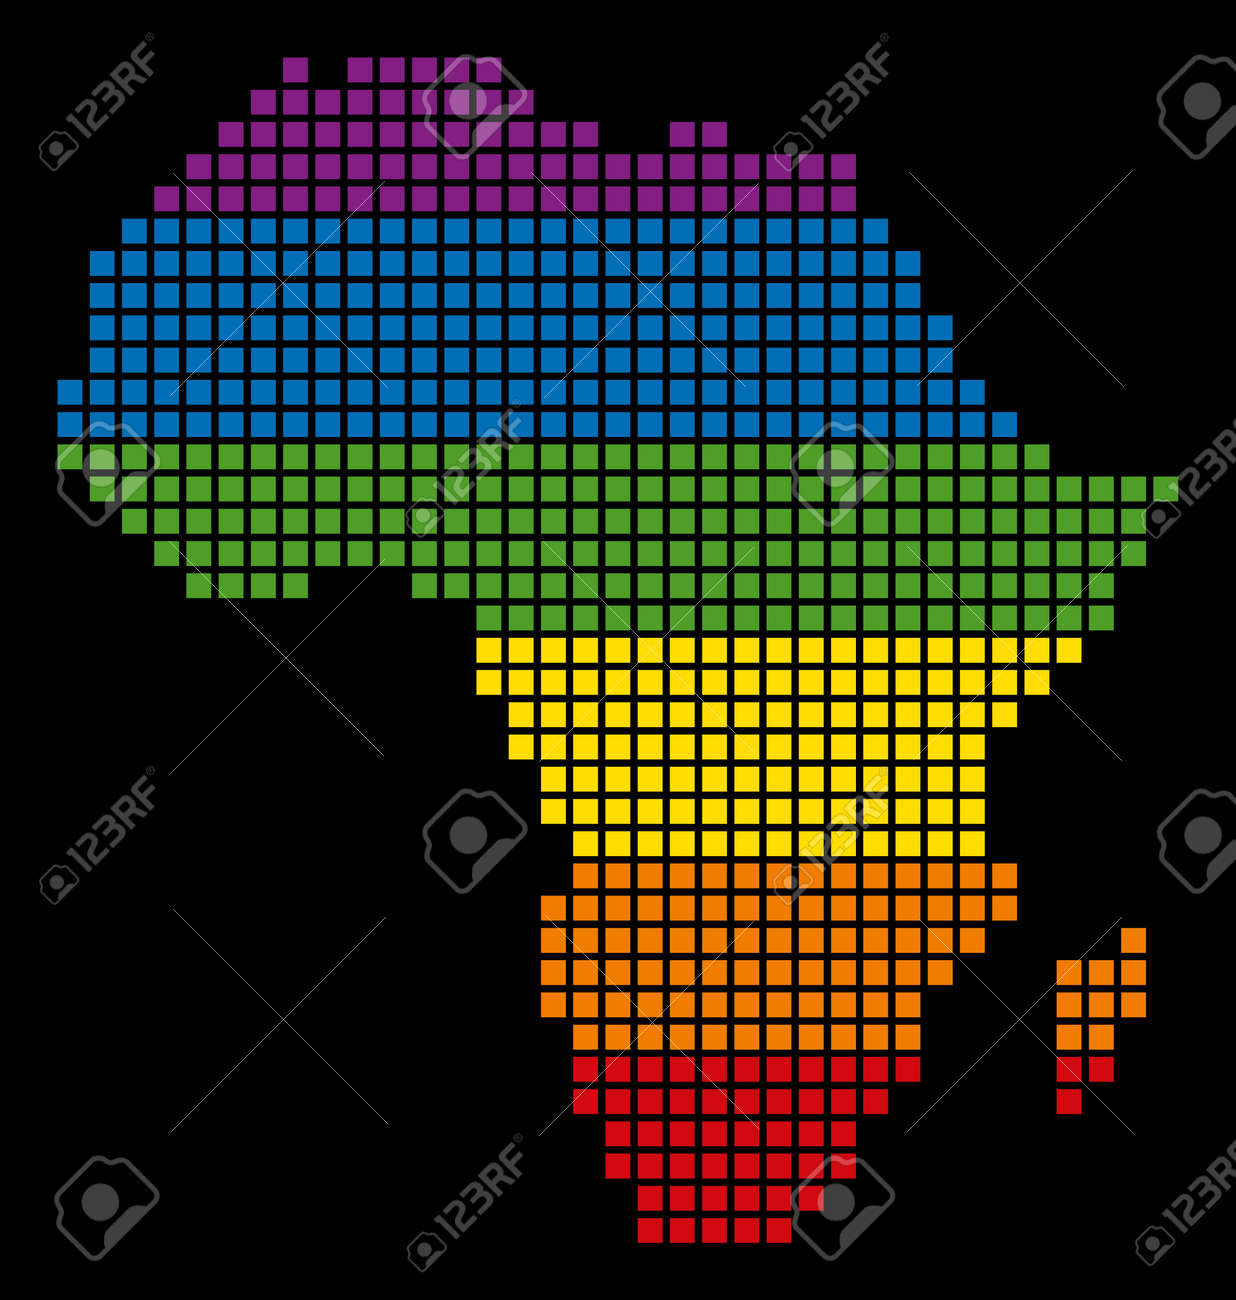 A Pixel LGBT Pride Africa Map For Lesbians Gays Bisexuals